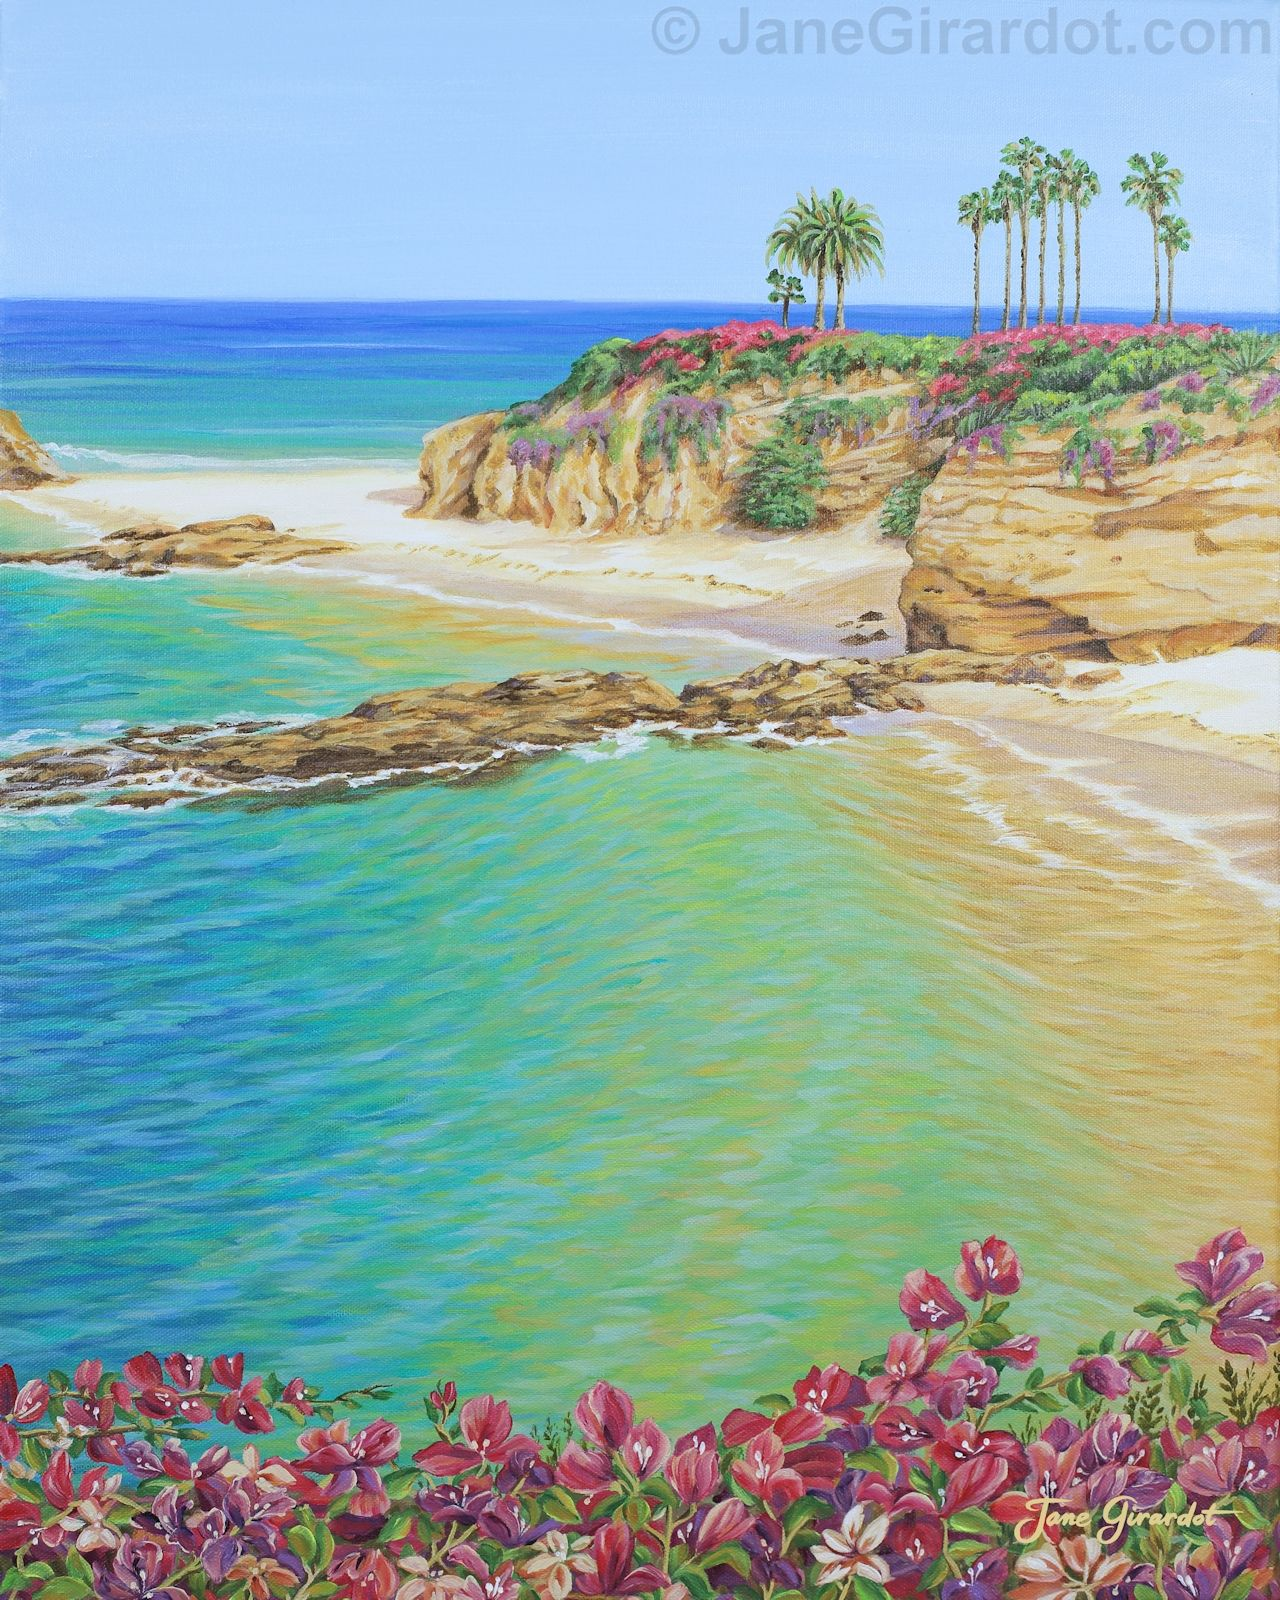 Treasure Island Laguna Beach: Treasure Island Beach By Jane Girardot